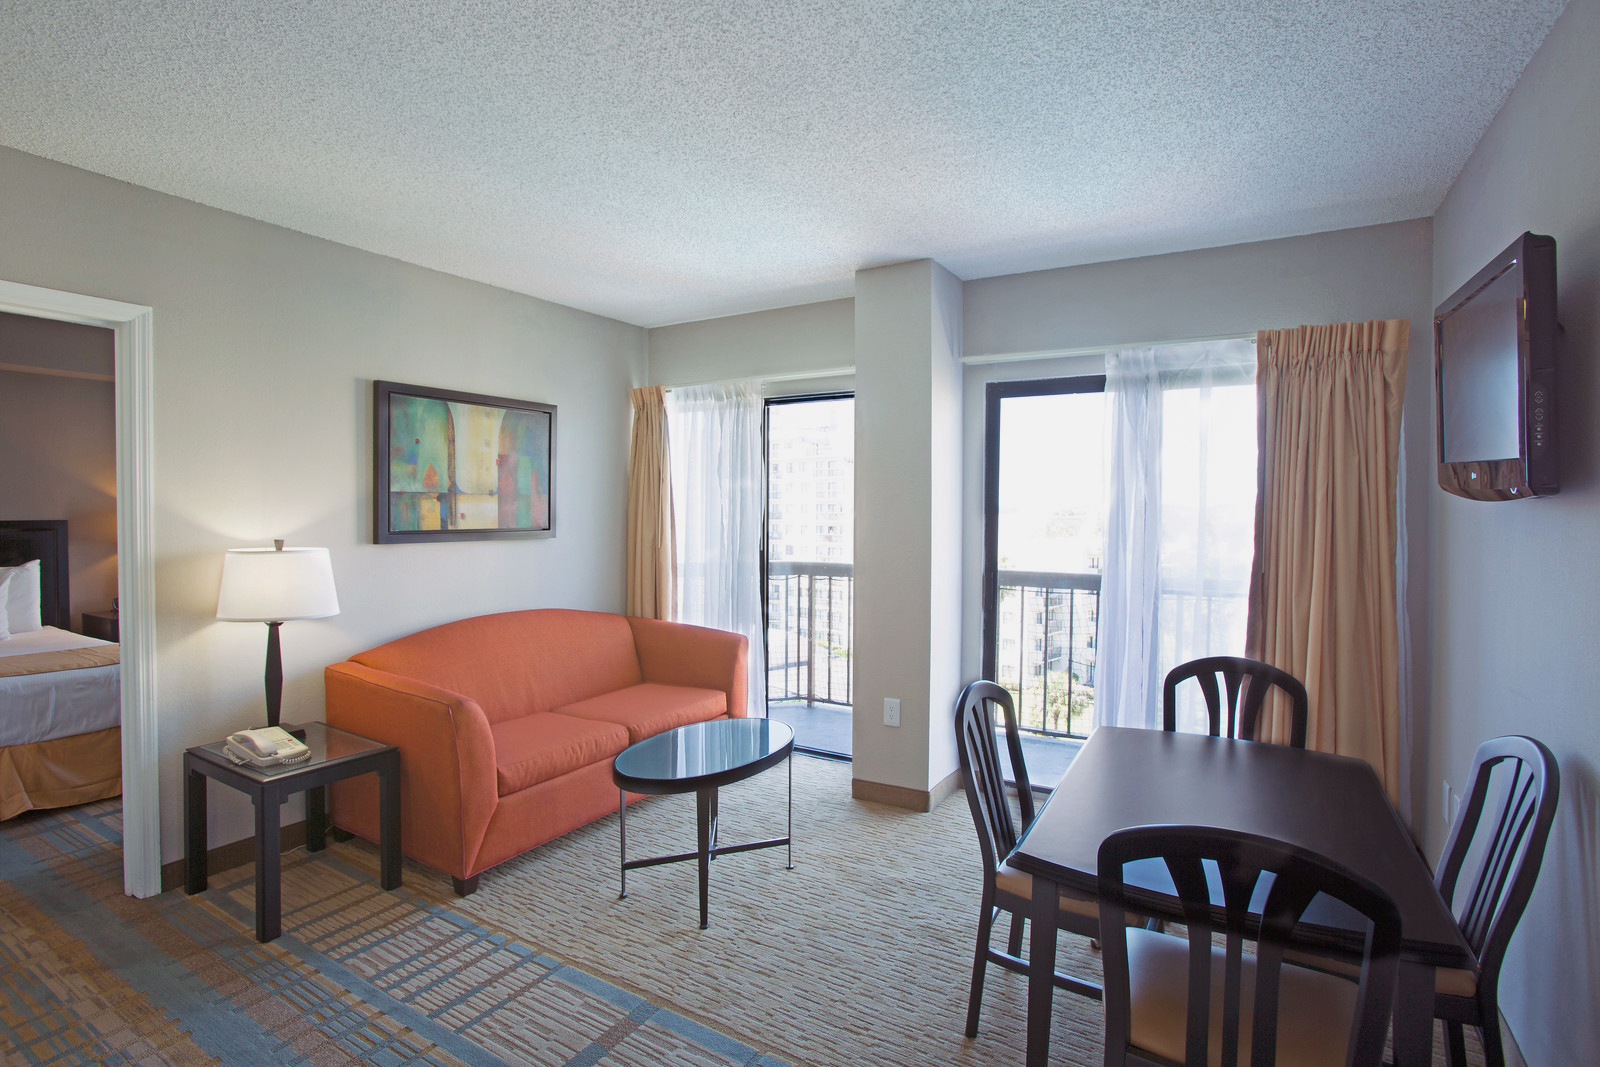 hotels with full kitchens in orlando florida kitchen throw rugs washable hotel suites suite the enclave studio features amenities